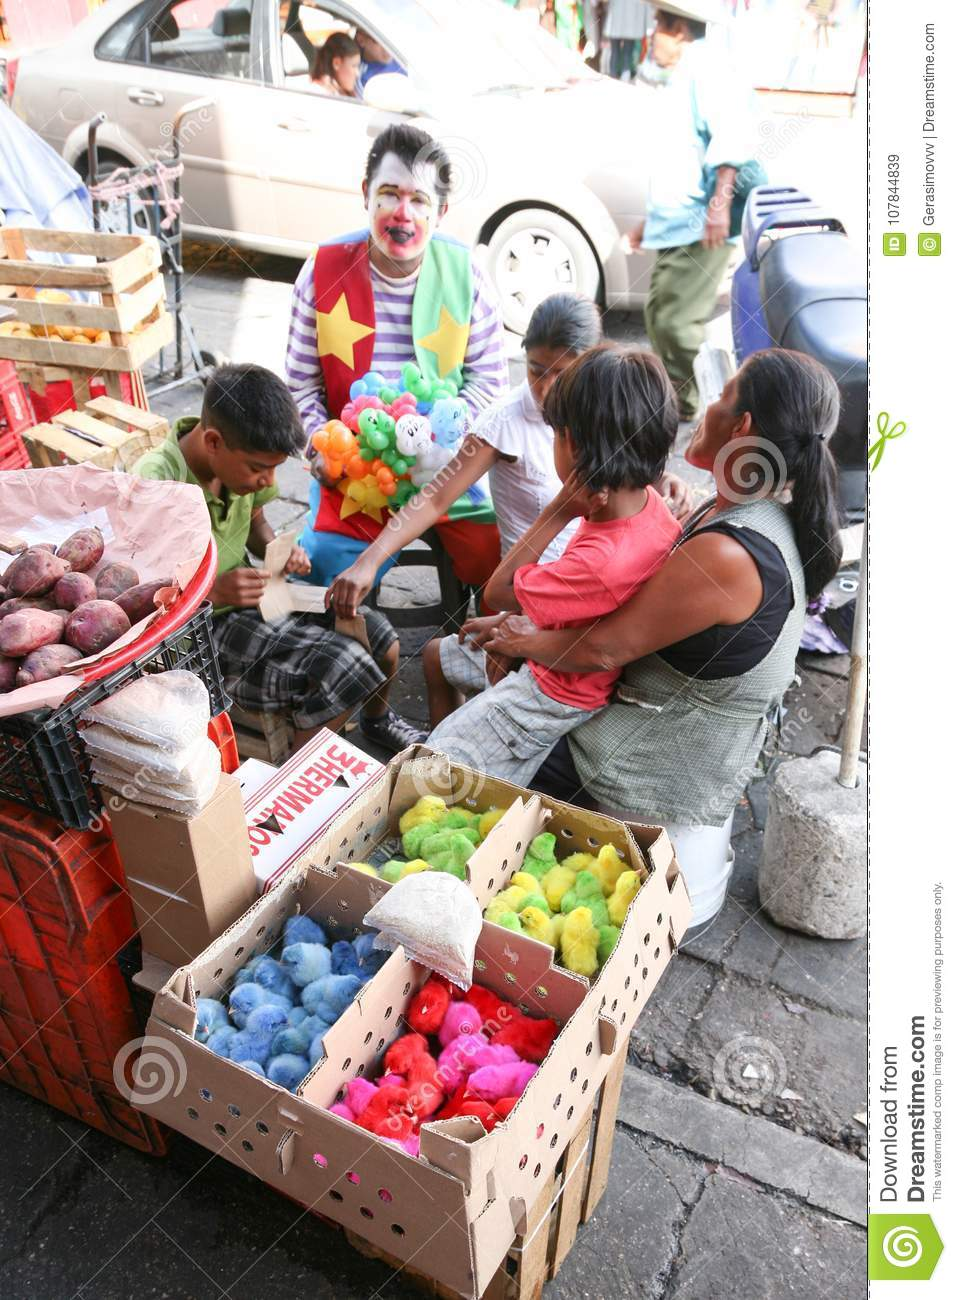 Traders selling little painted chicks on a local market in Oaxaca, Mexico